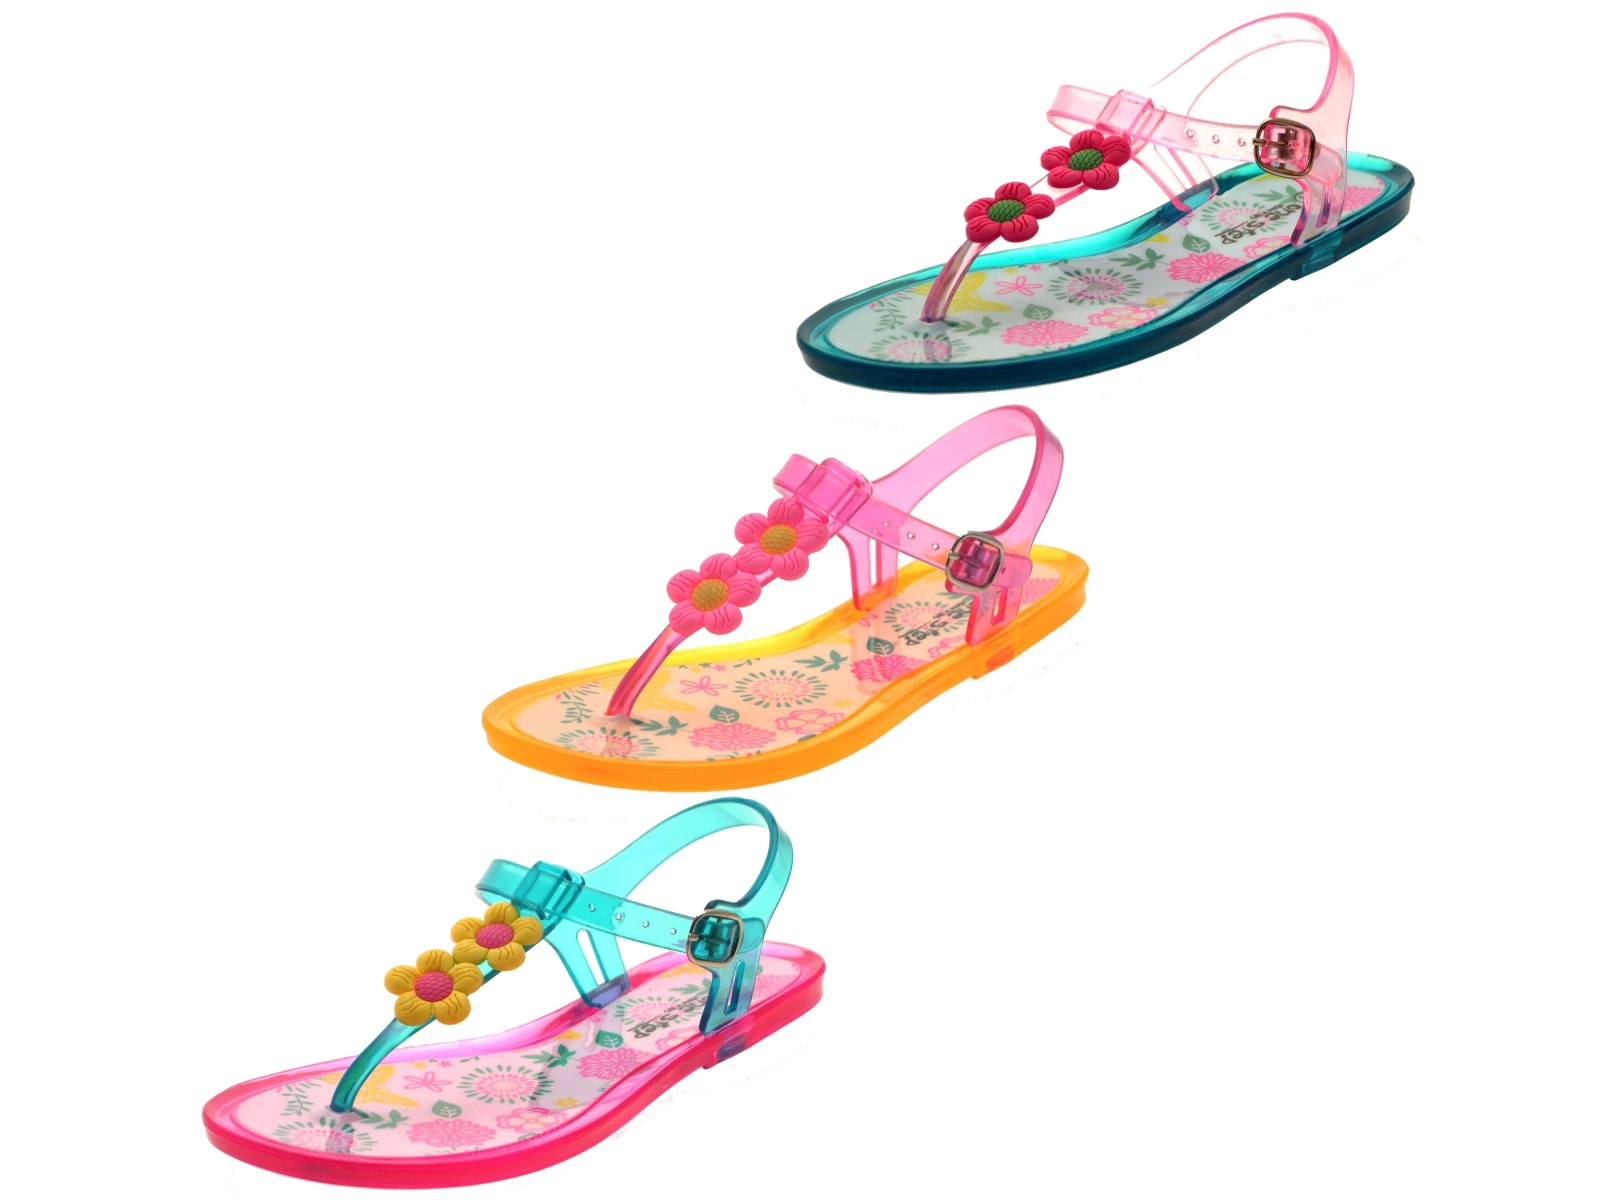 Shop the sweetest selection of jelly shoes from some of your favourite designers. Made with the smoothest PVC, these quick-drying shoes are an ideal addition for playing on the beach or in water. Discover trainers, pumps, sandals and flip-flops, all made in this stylish, yet versatile material for both girls and boys, from baby to teen.